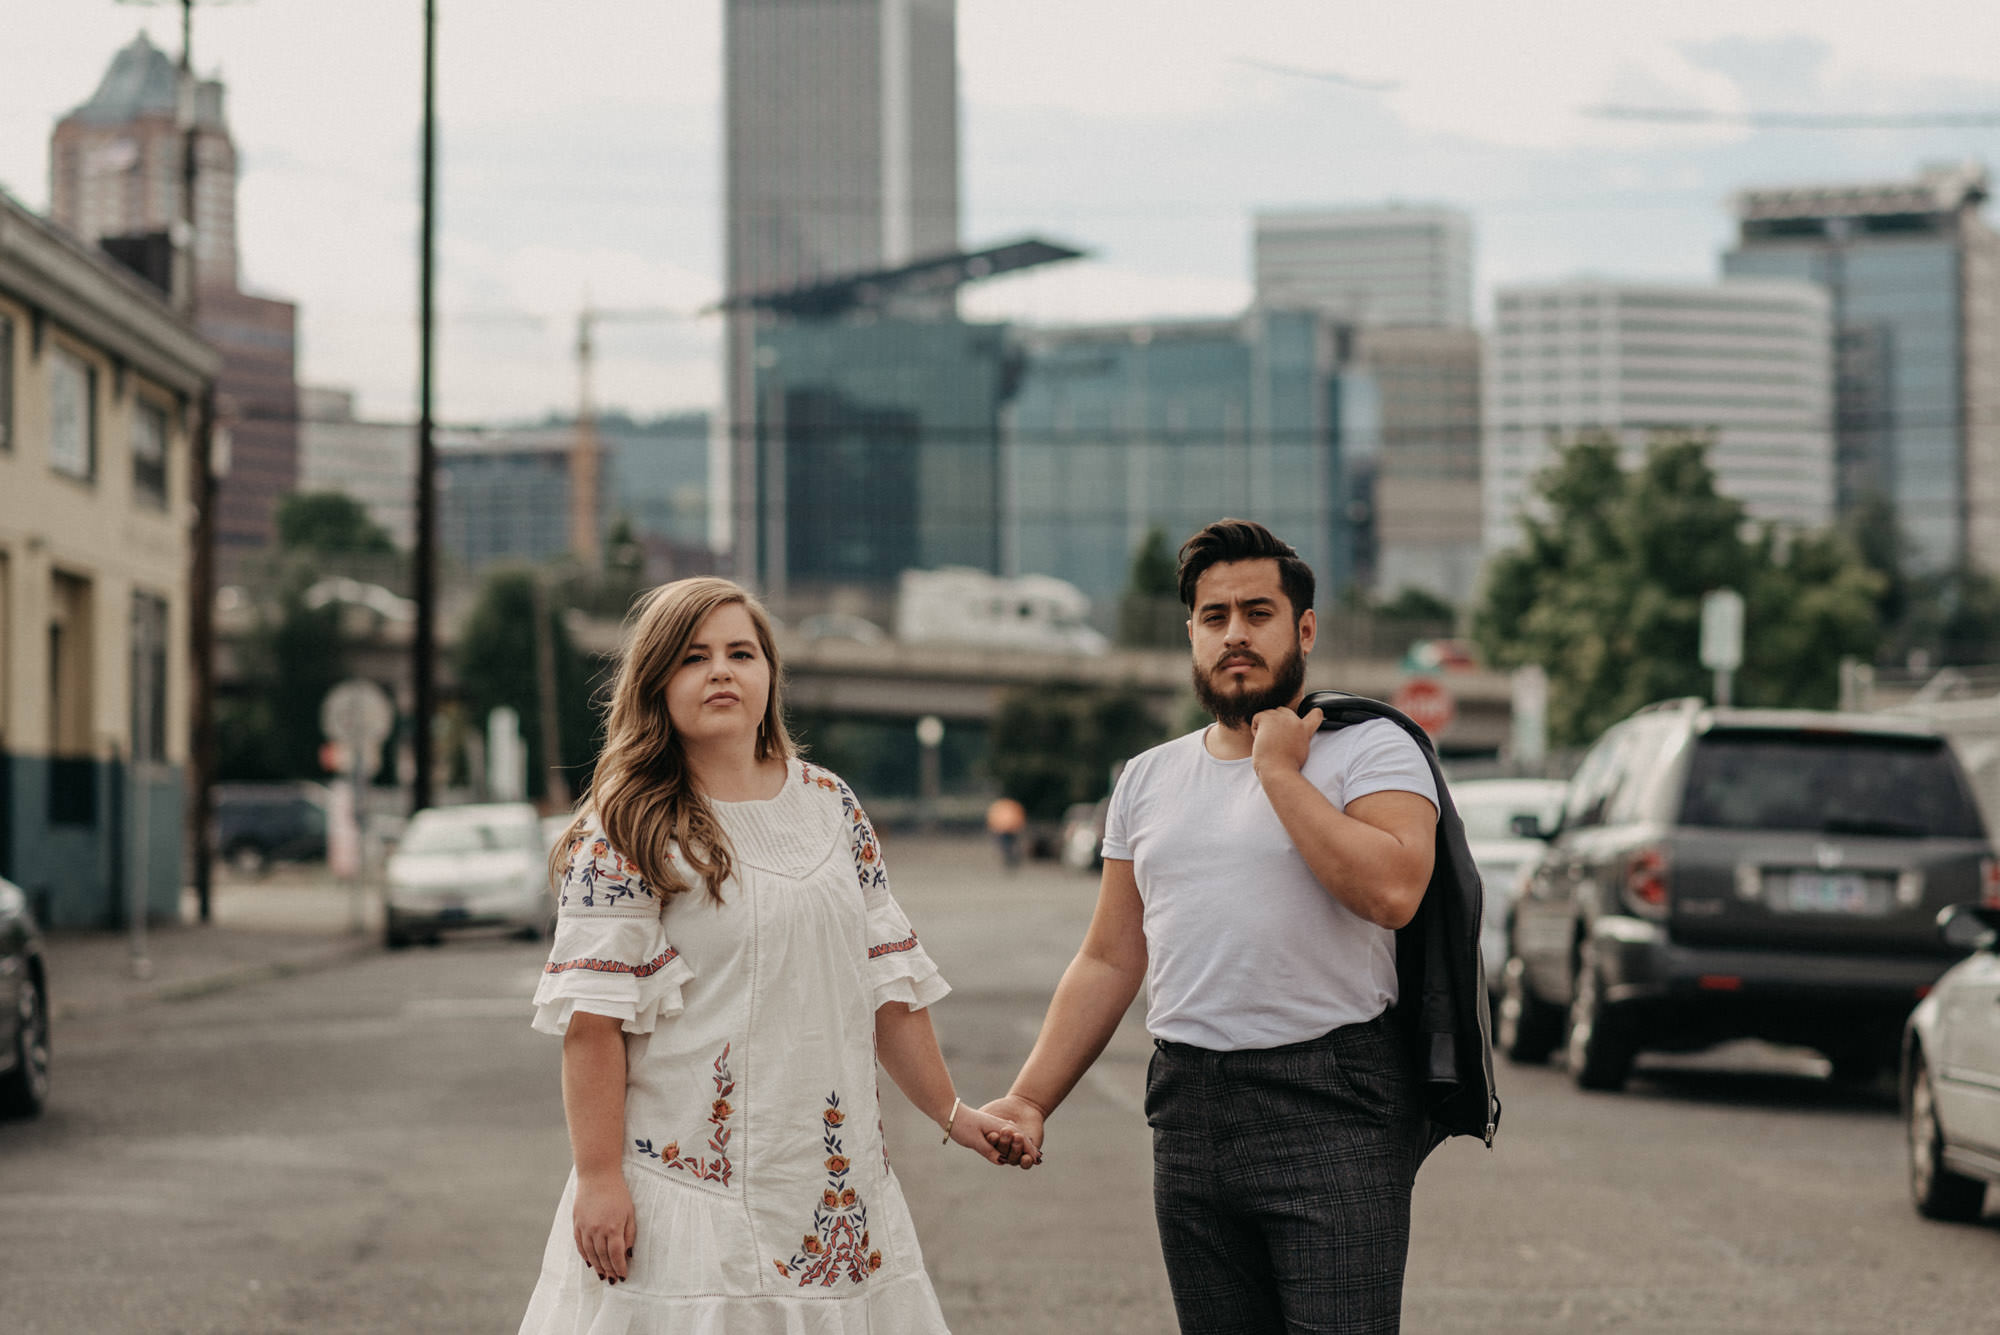 engagement-industrial-disctrict-cityscape-portland-downtown-4826.jpg